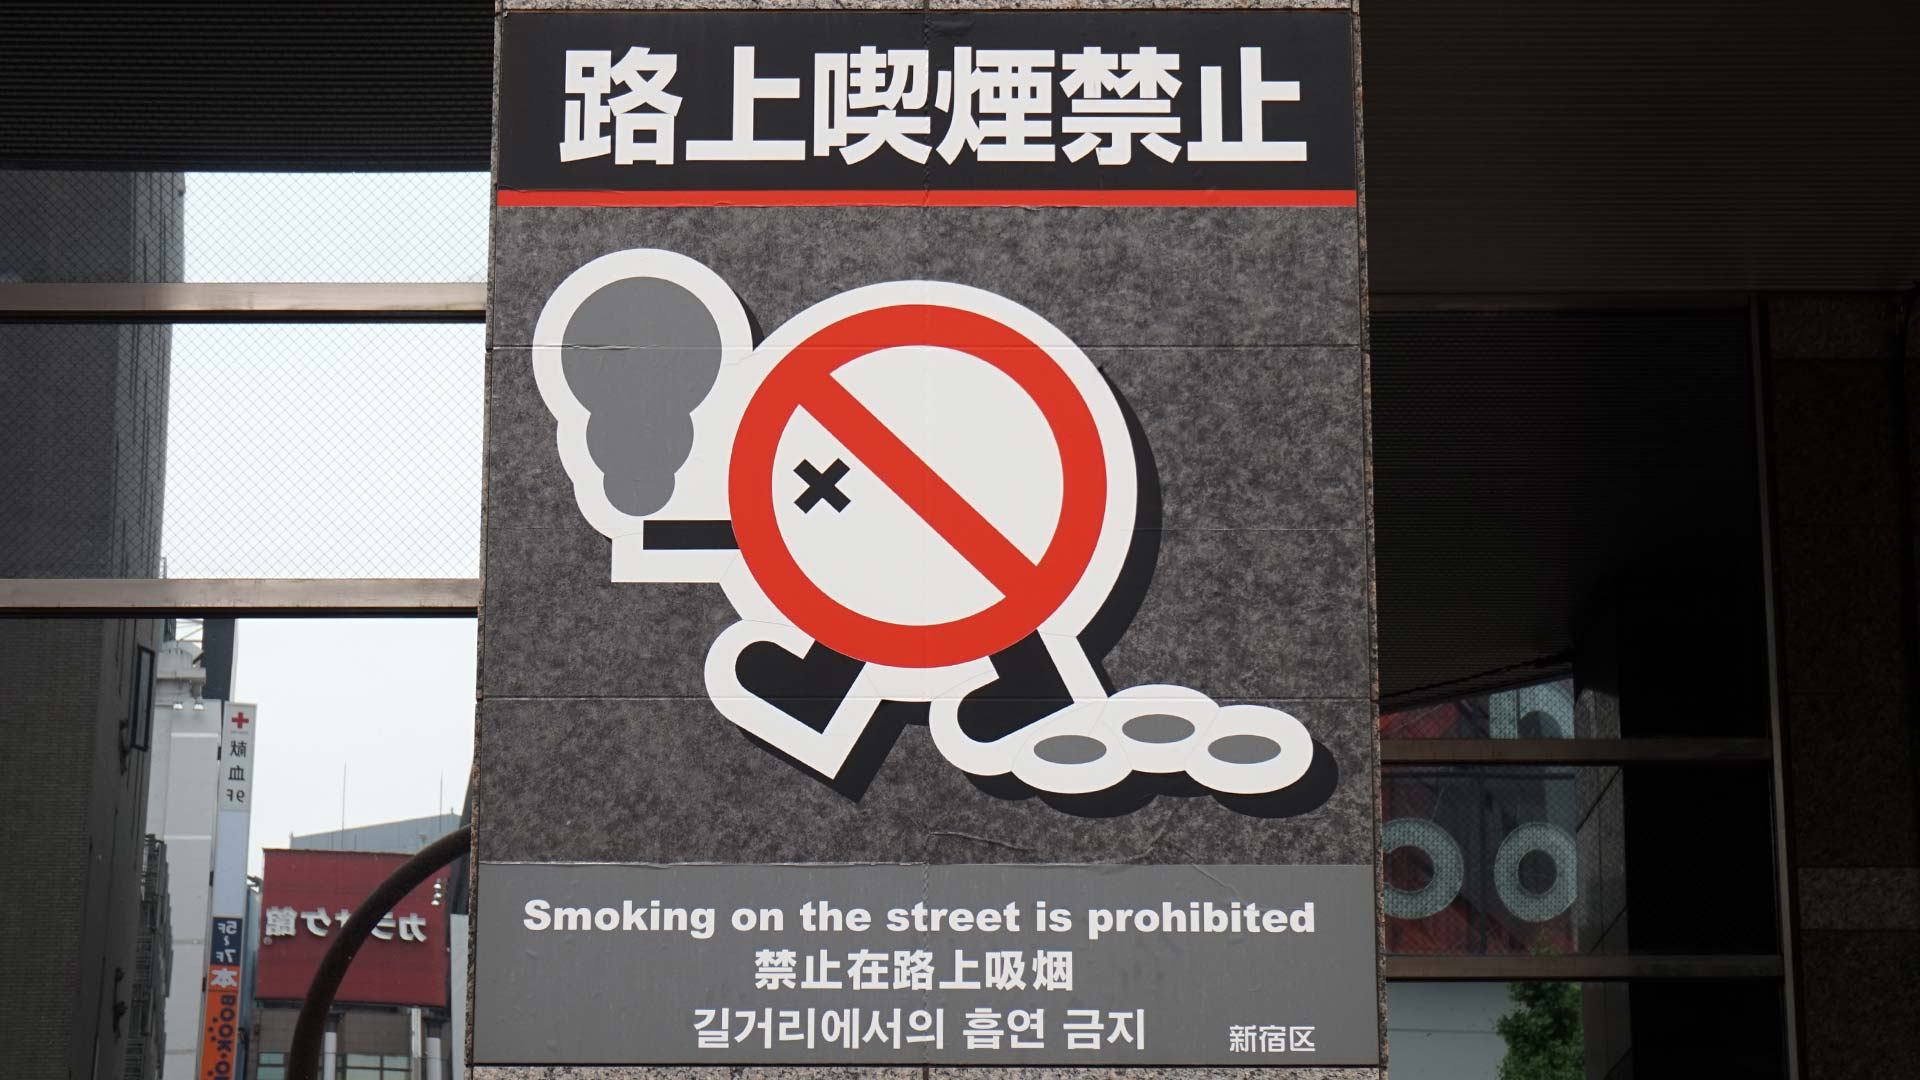 The smoking prohibition on the streets